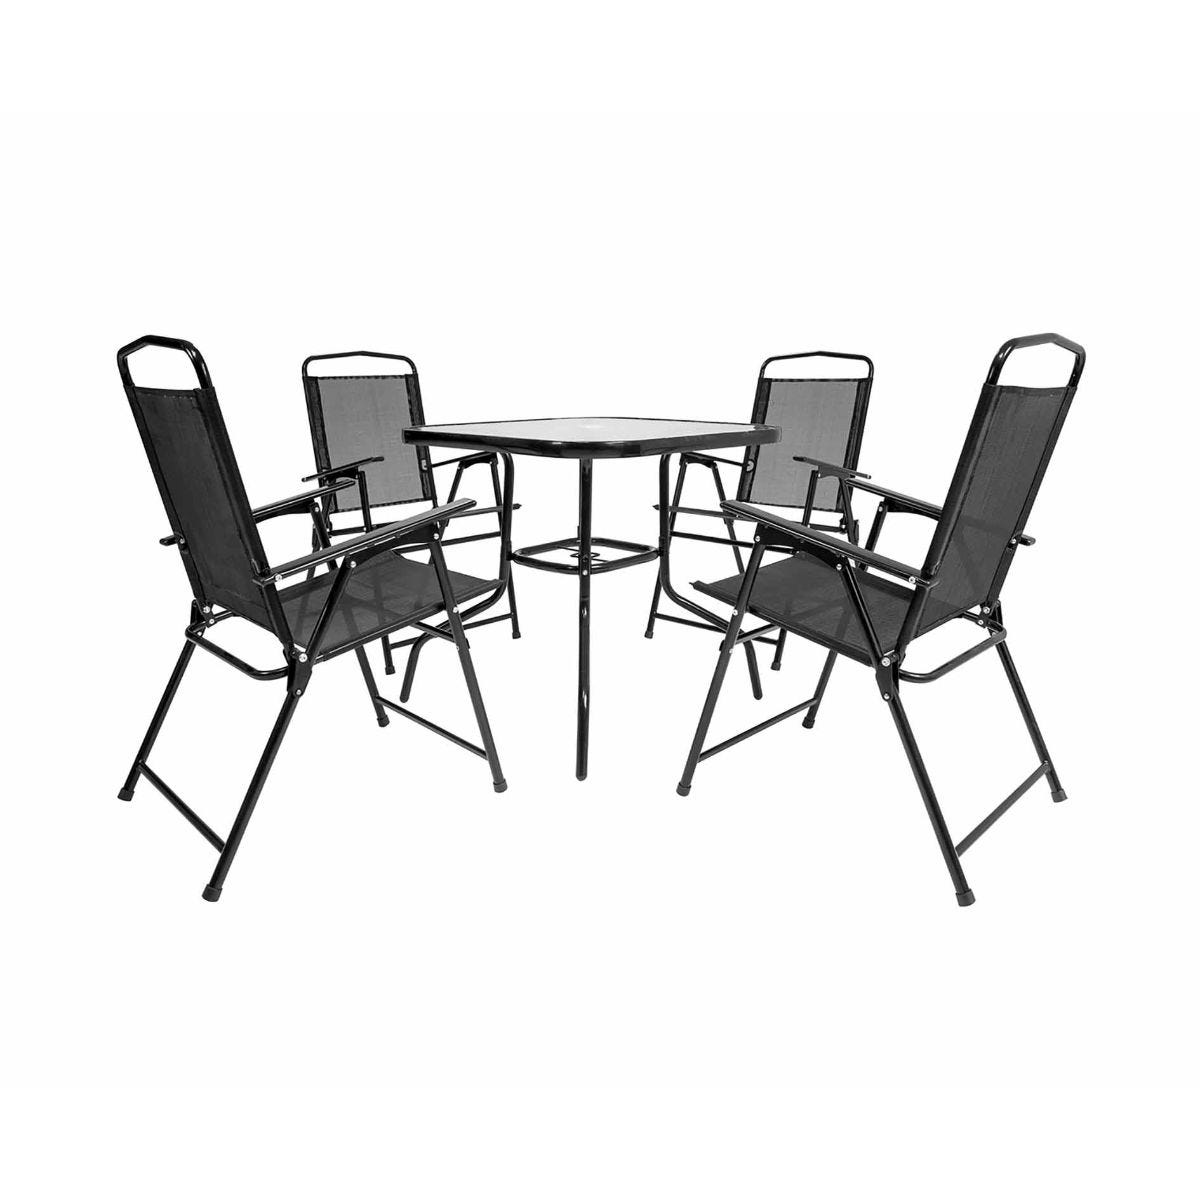 Charles Bentley Garden Mesh Square 4 Seater Dining Set, Black